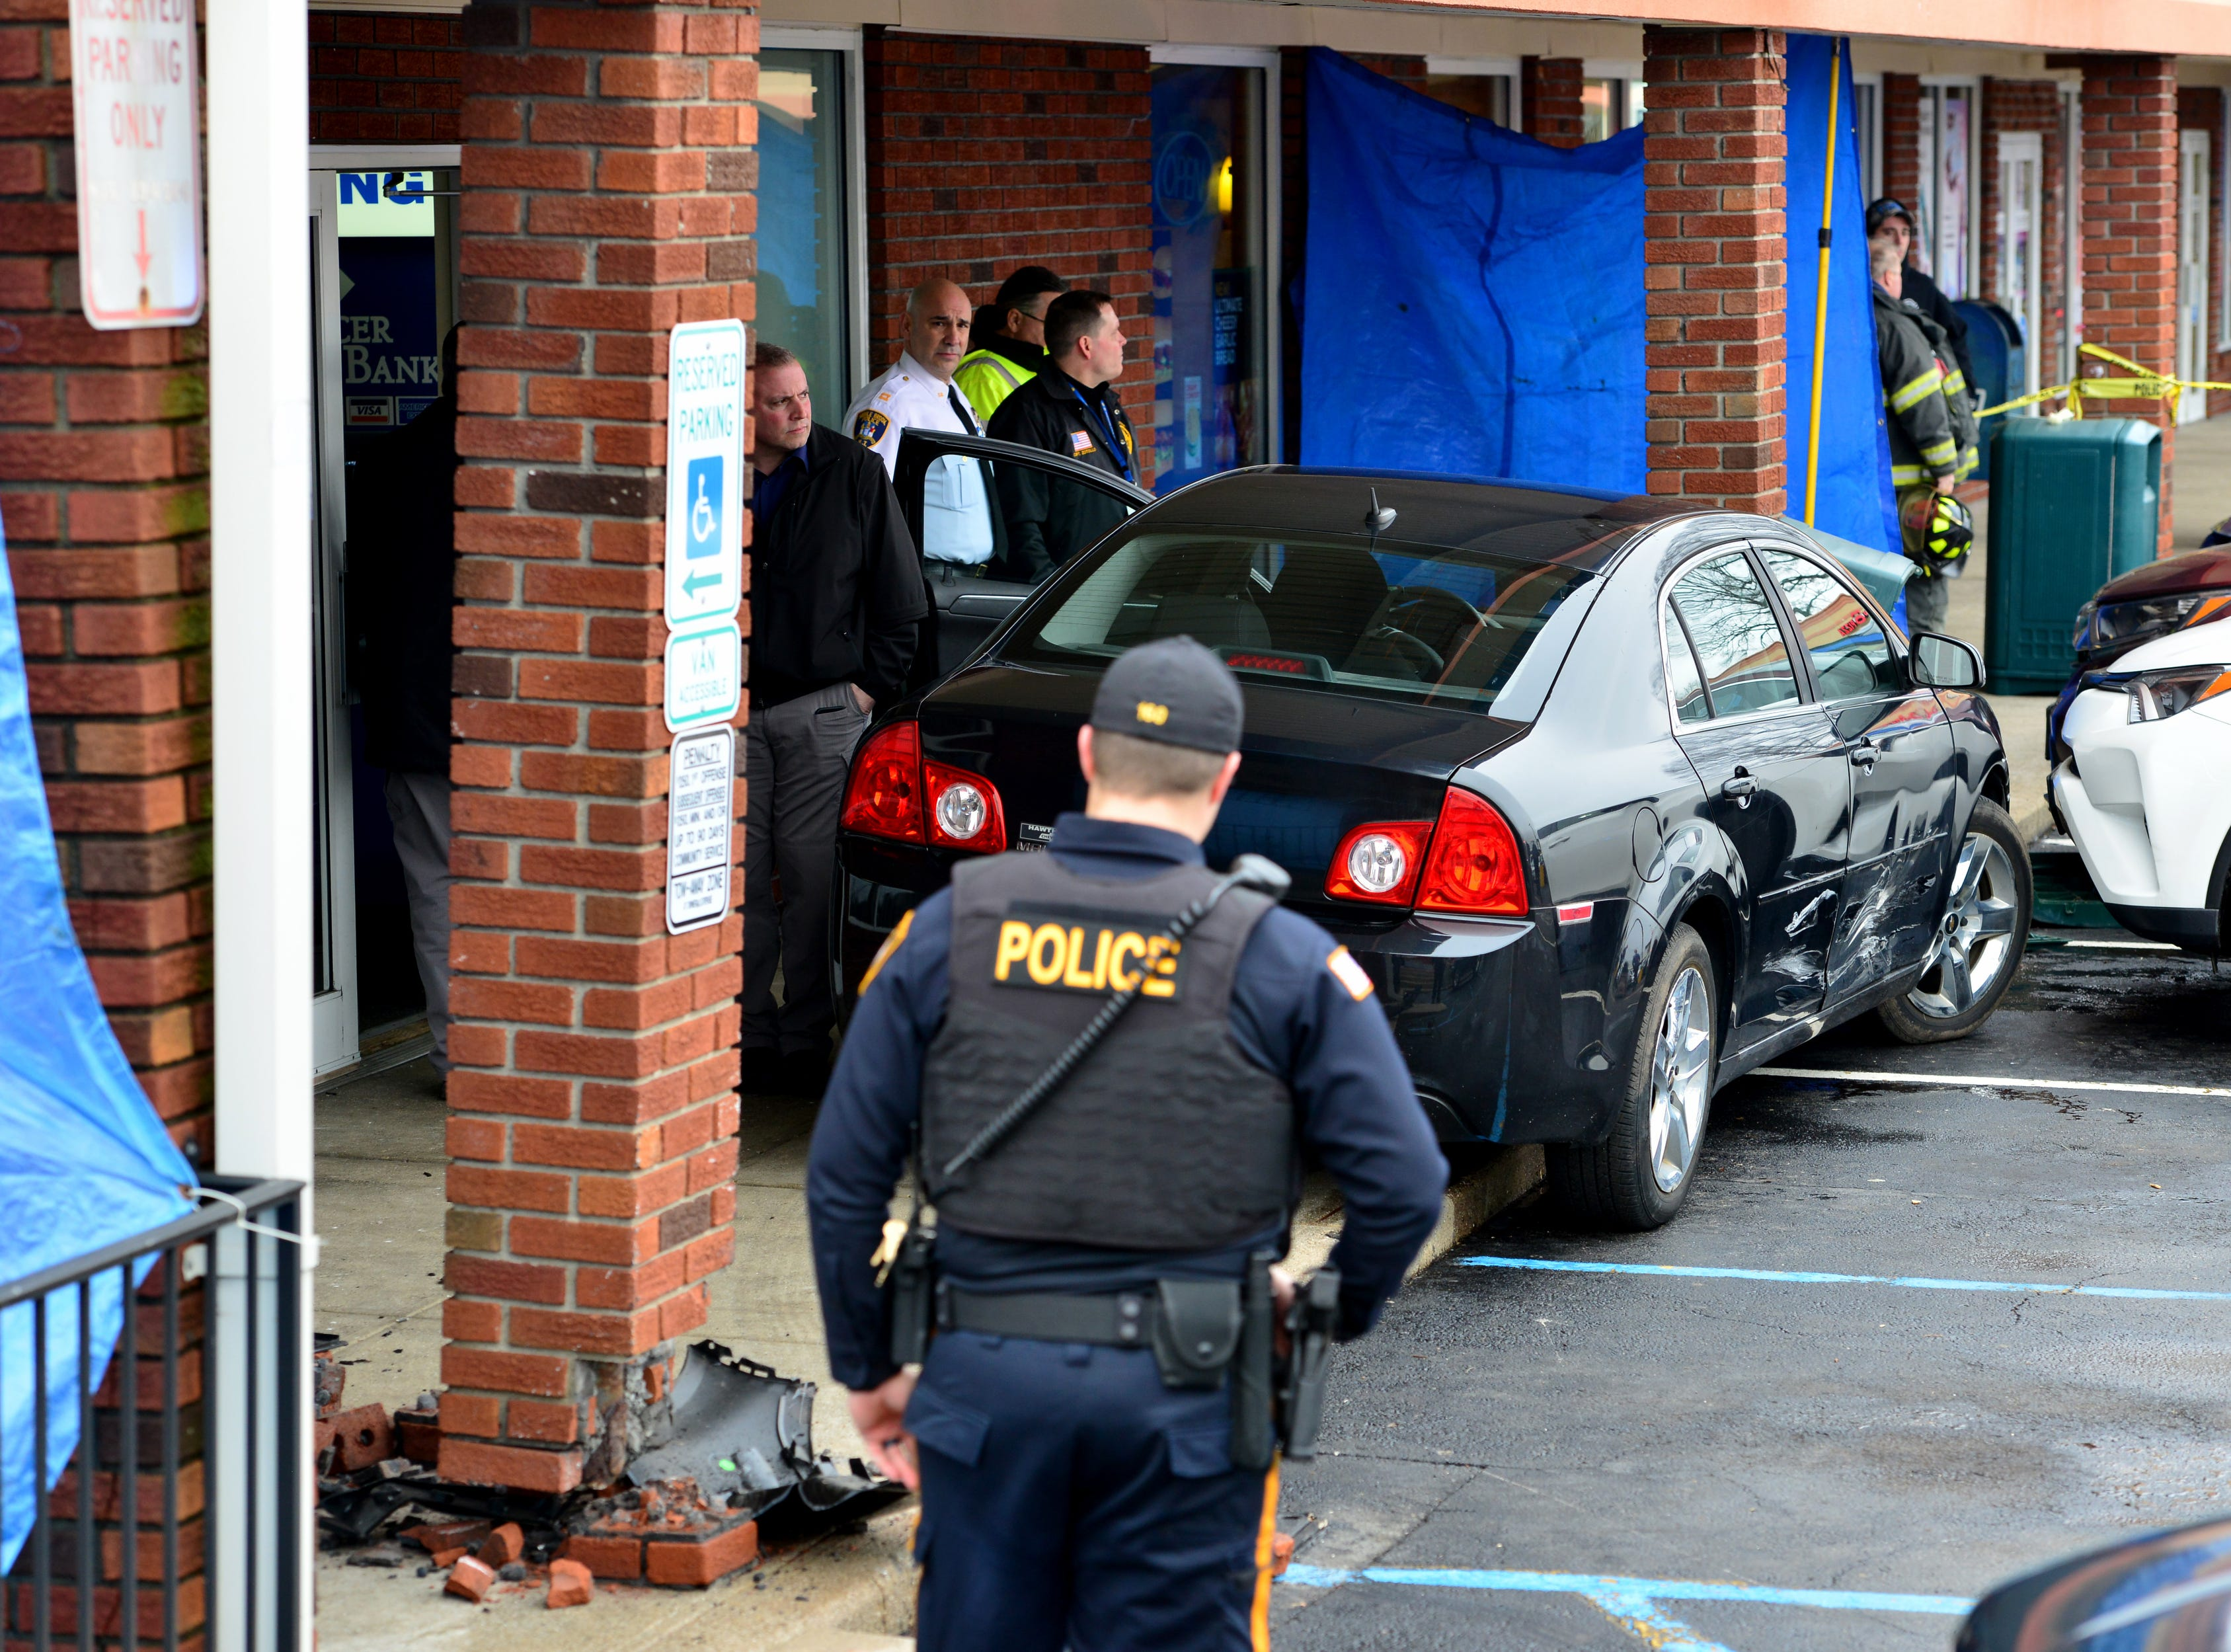 A car struck a building in a shopping center on Market St in Saddle Brook on Thursday February 7, 2019.